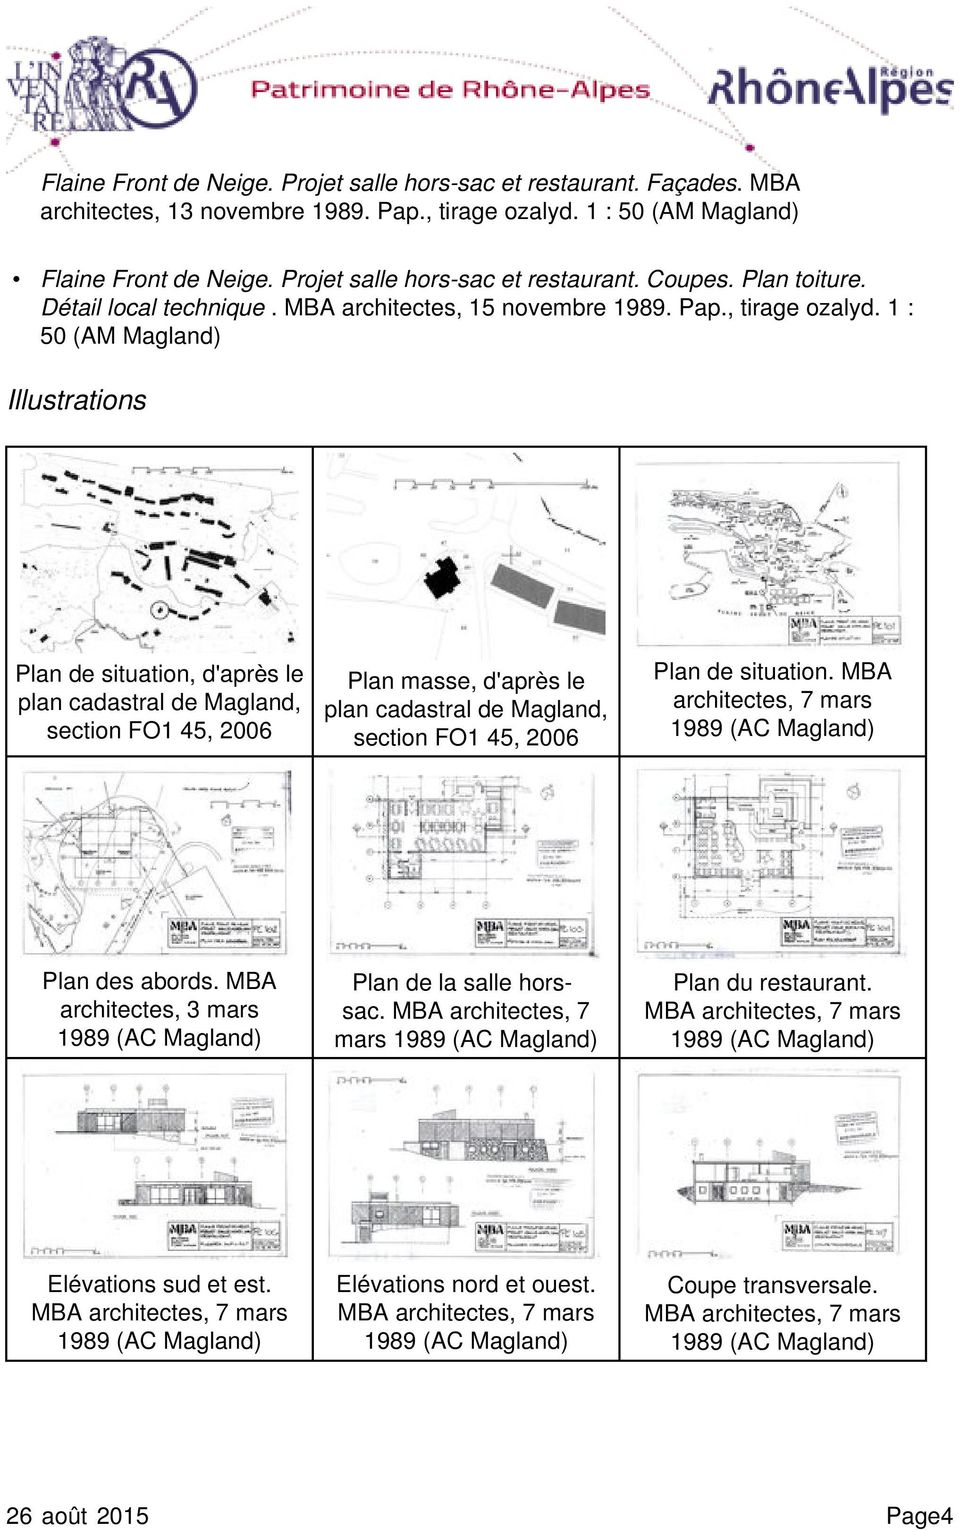 1 : 50 (AM Magland) Illustrations Plan de situation, d'après le plan cadastral de Magland, section FO1 45, 2006 Plan masse, d'après le plan cadastral de Magland, section FO1 45, 2006